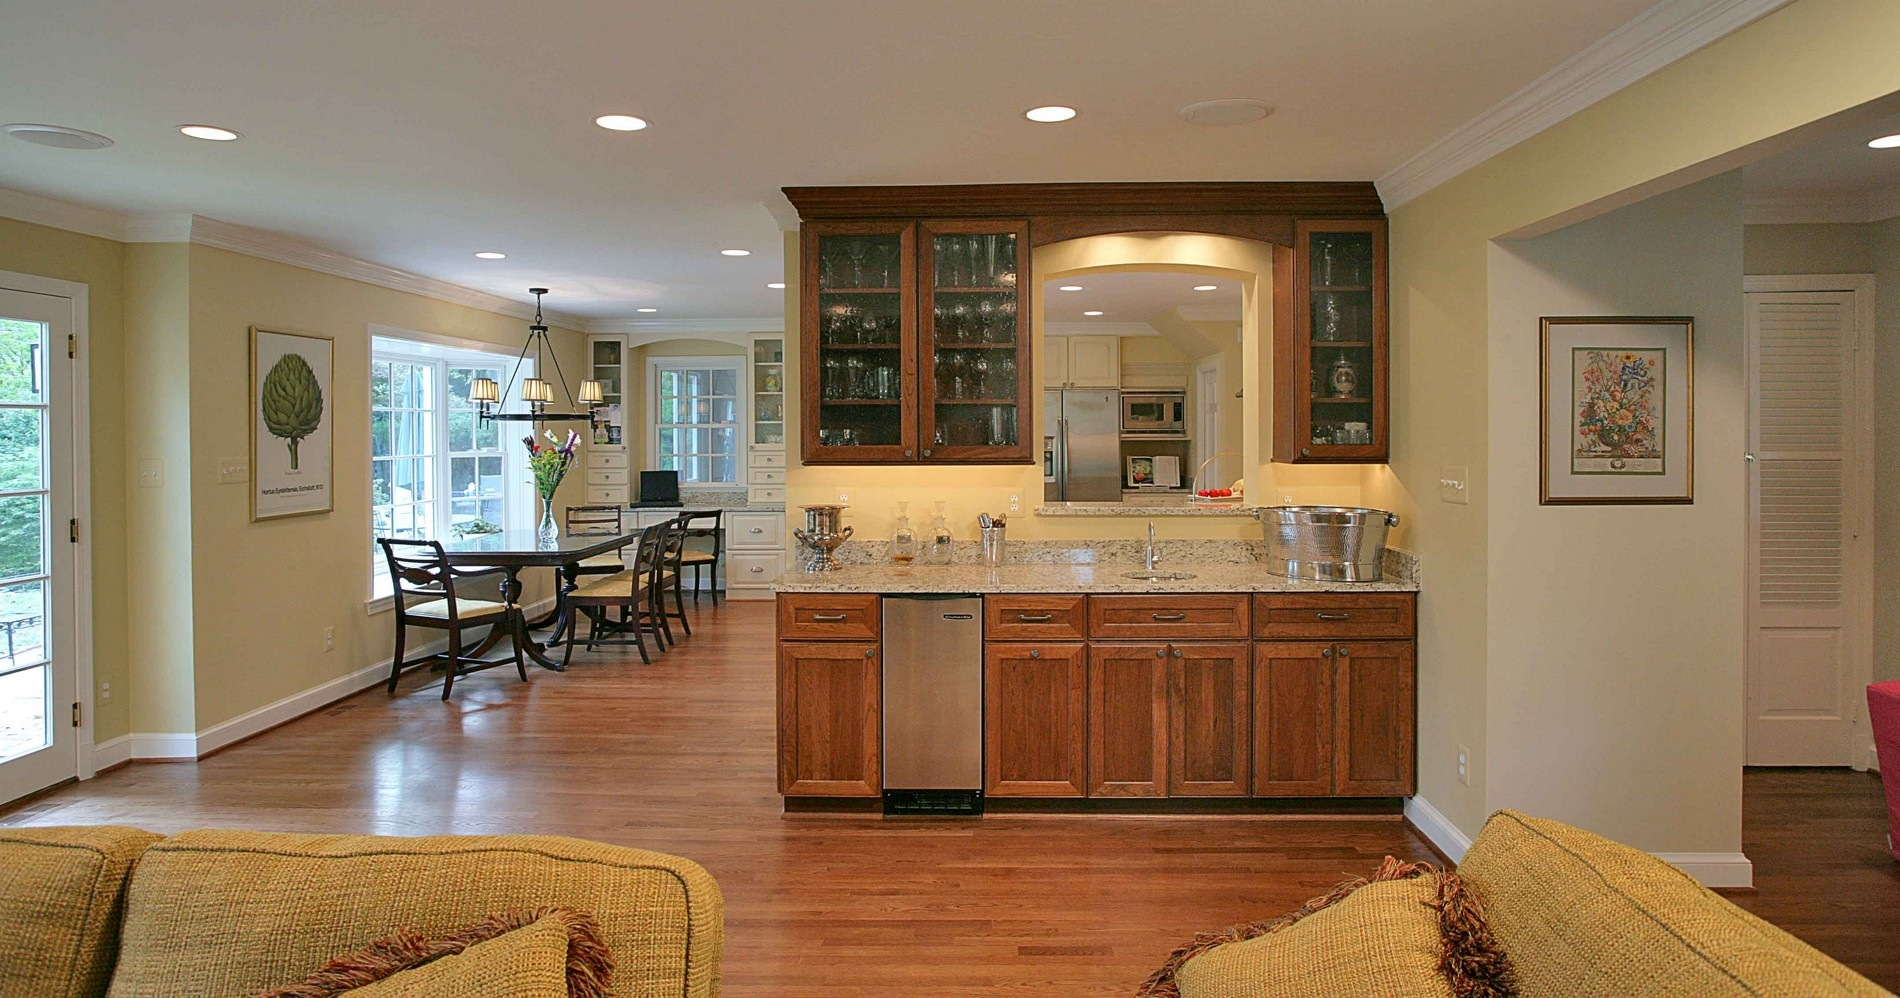 chevy chase maryland whole house remodeling kitchen remodeling - Kitchen Remodeling Maryland